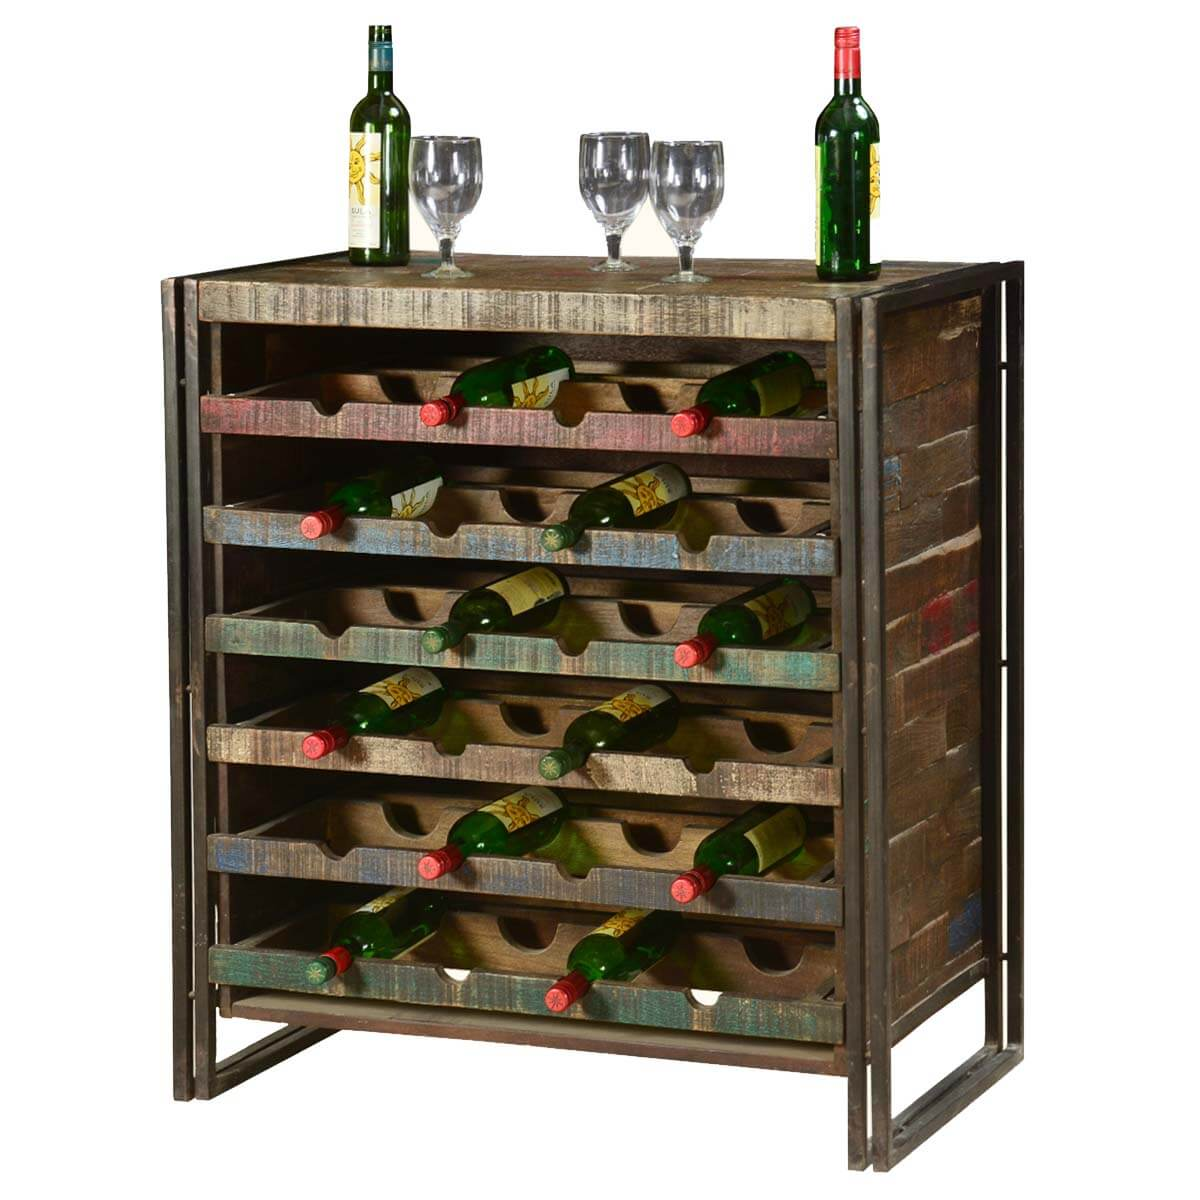 Small Wine Storage Cabinets Rustic Industrial Wooden Liquor Wine Storage Rack For 24